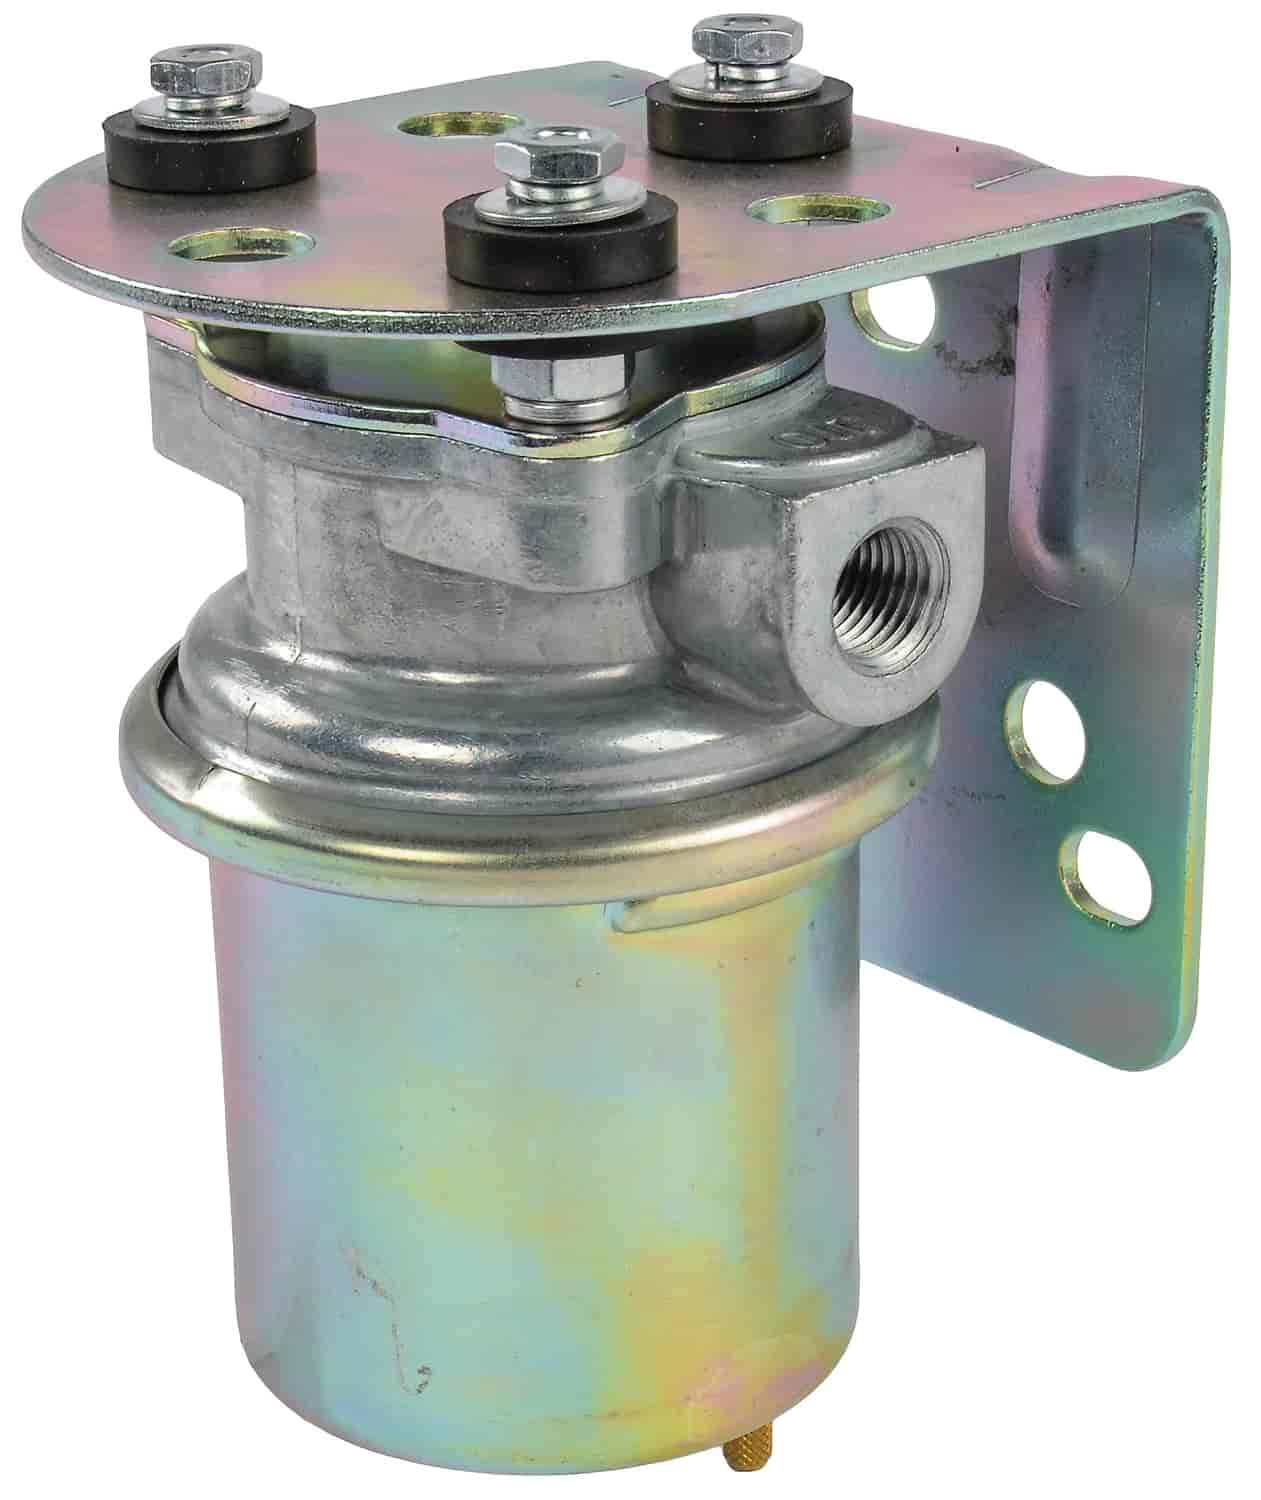 Carter P4070 Electric Fuel Pump Pump With 50 Gph At 4 8